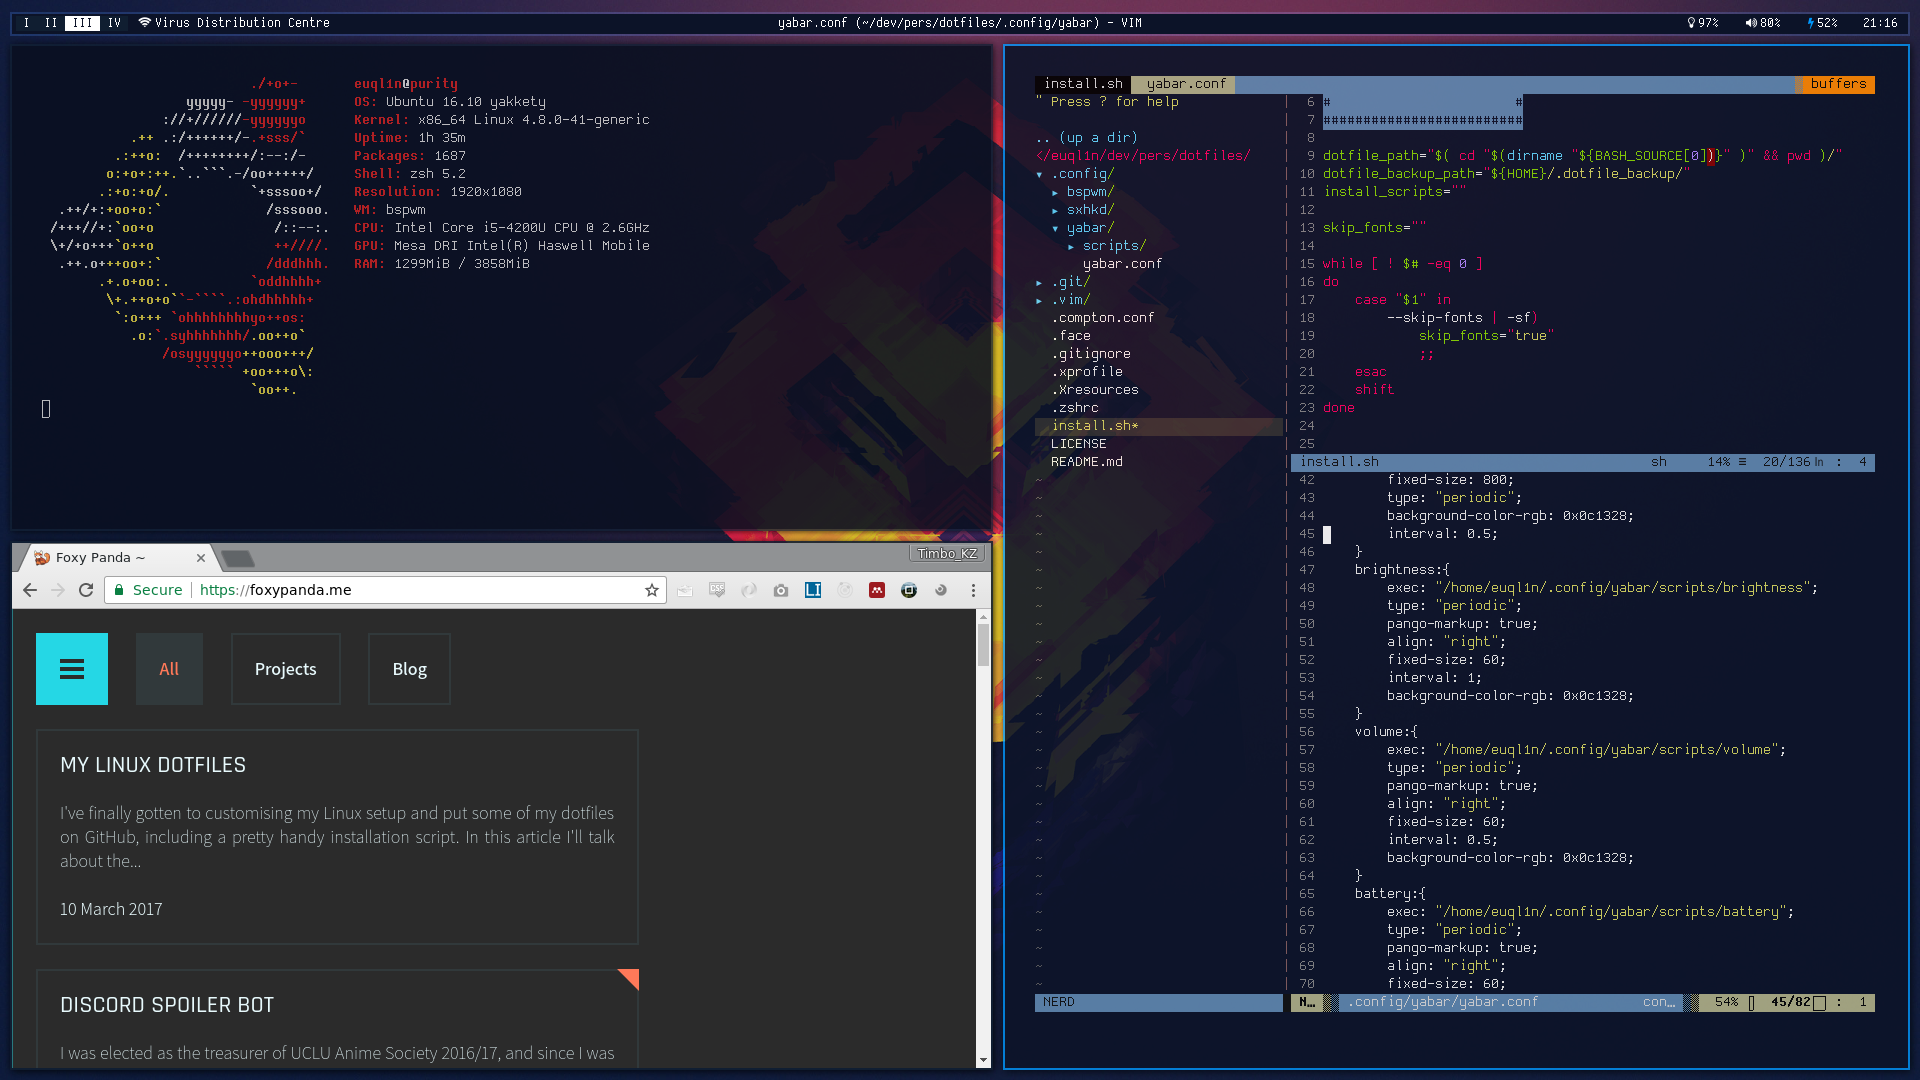 The Linux setup for my laptop, Purity, Sony VAIO Pro 13